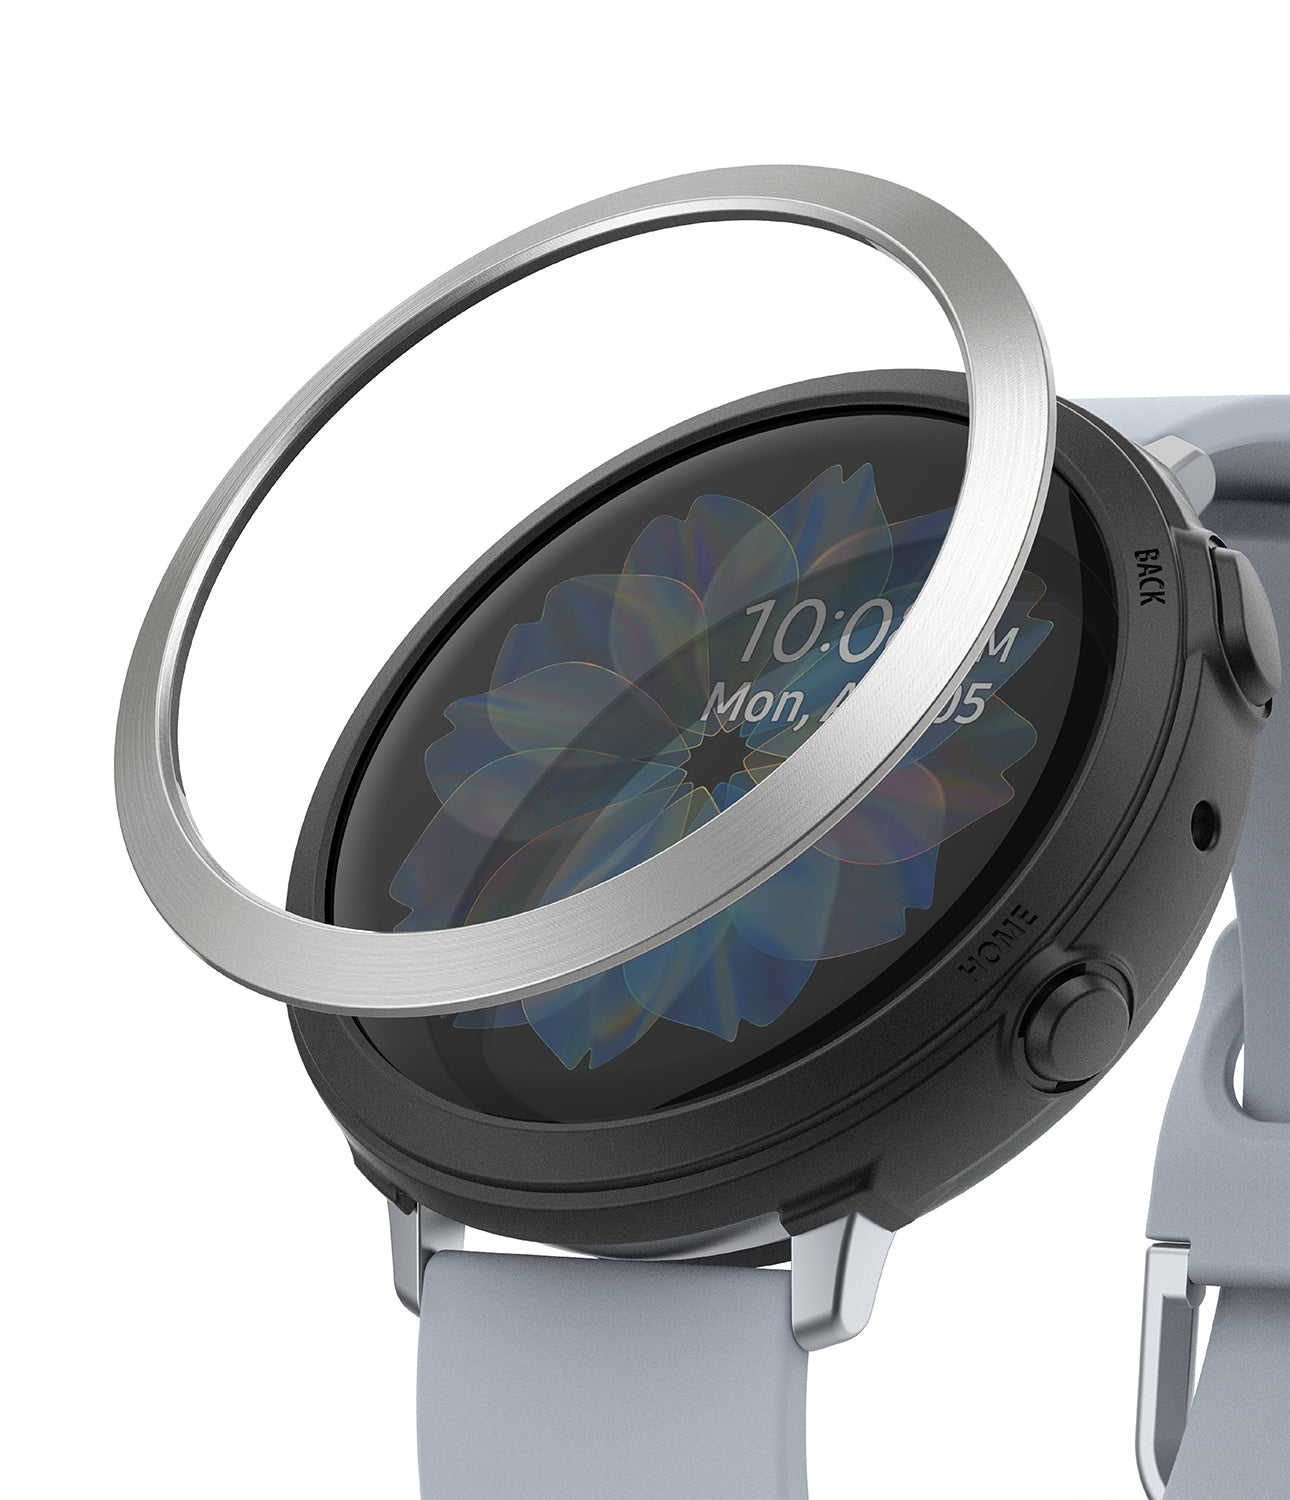 galaxy watch active 2 case air sports + bezel styling combo : black + 20